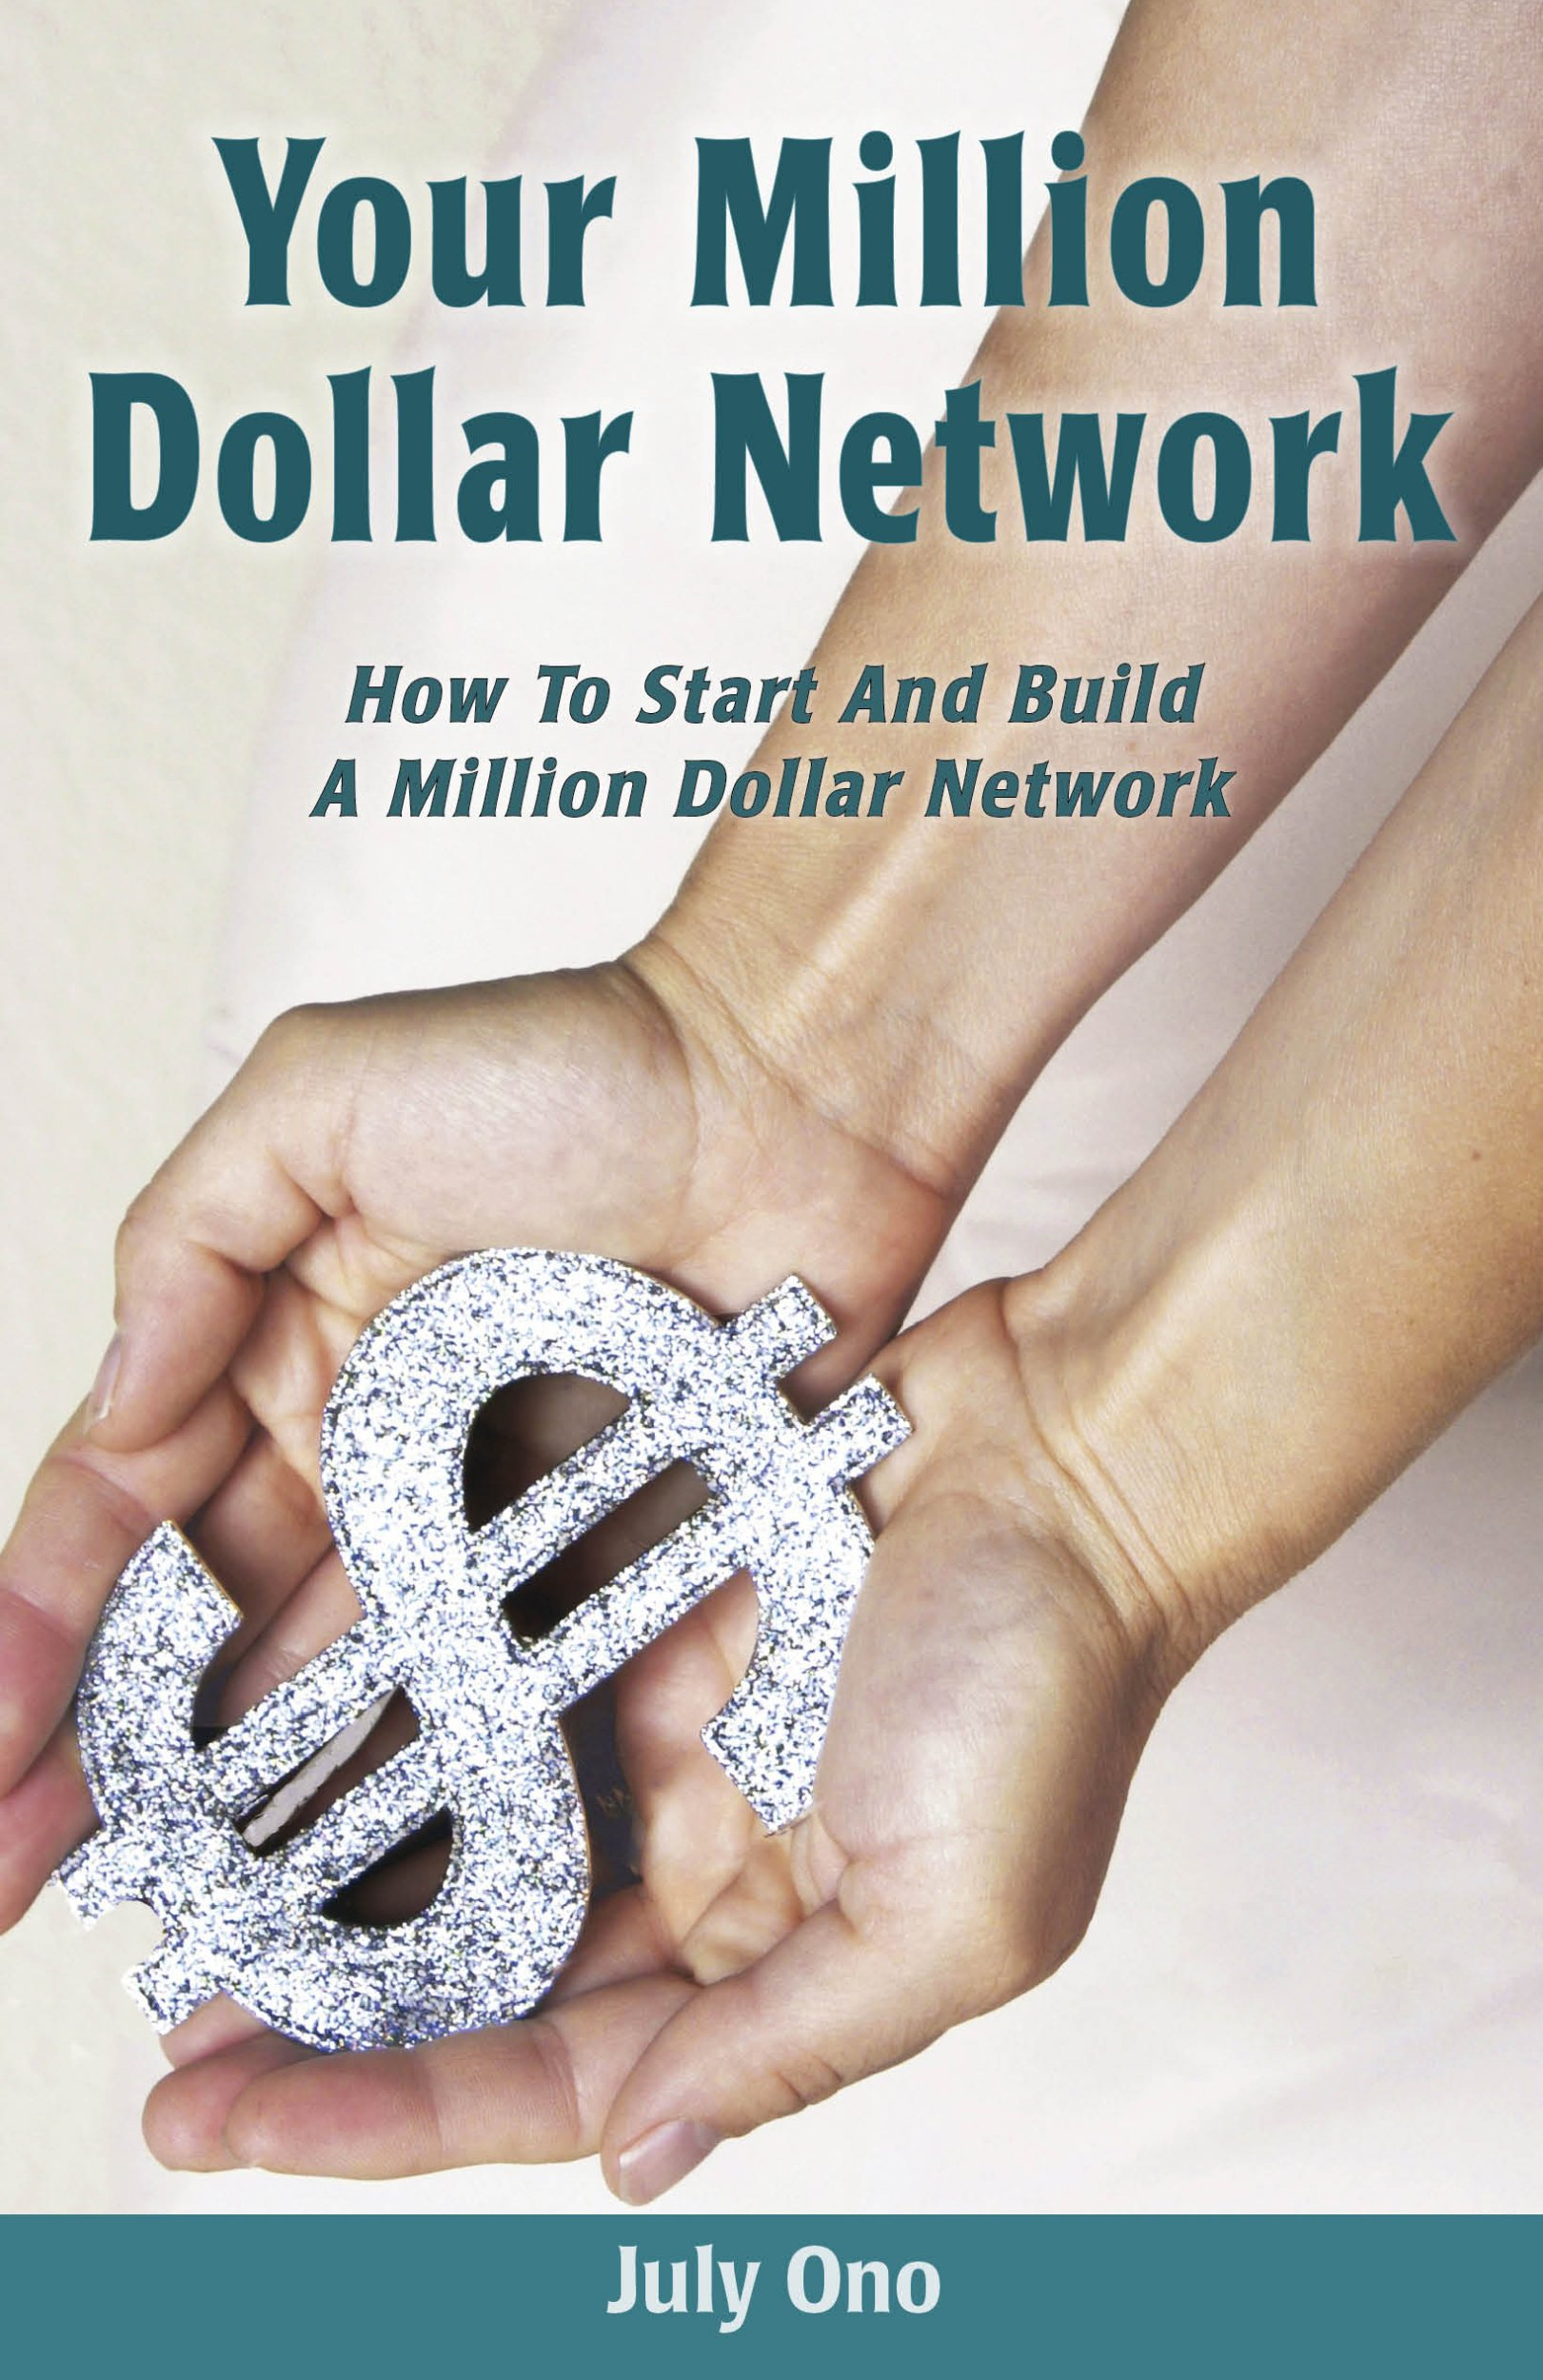 Read Online Your Million Dollar Network: How to Start and Build Your Million Dollar Network PDF